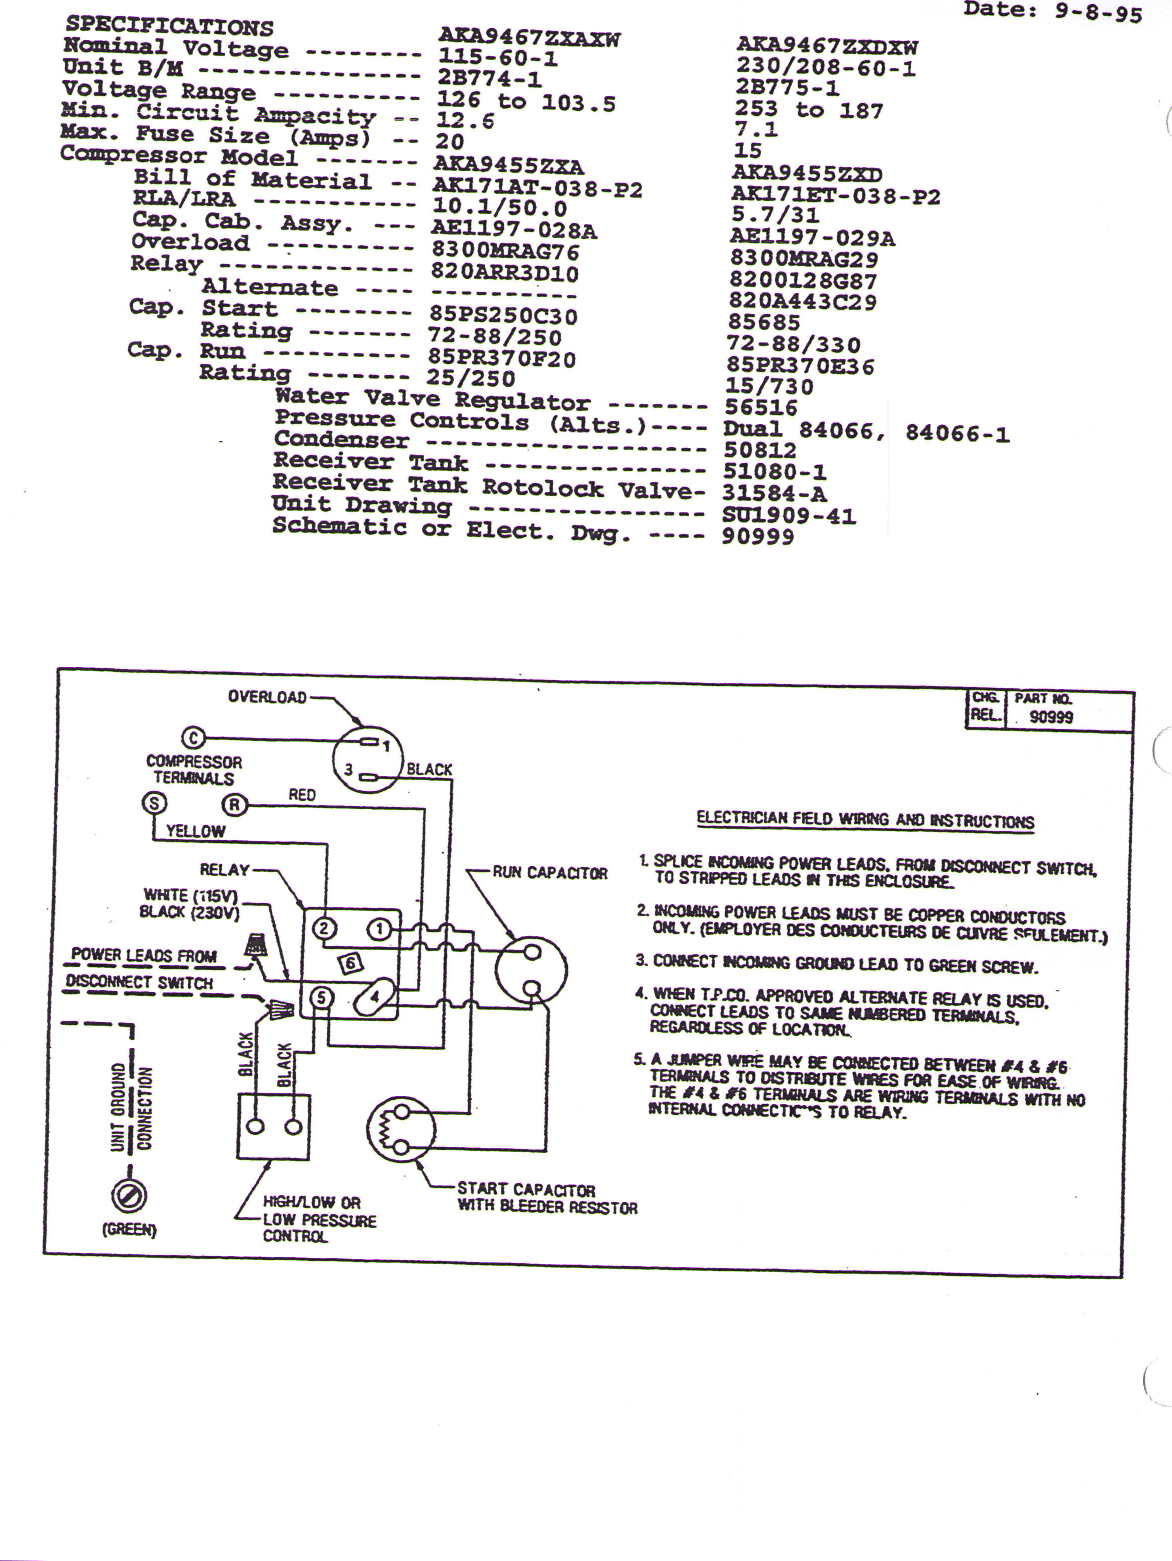 Wiring Diagram For Tecumseh Compressor